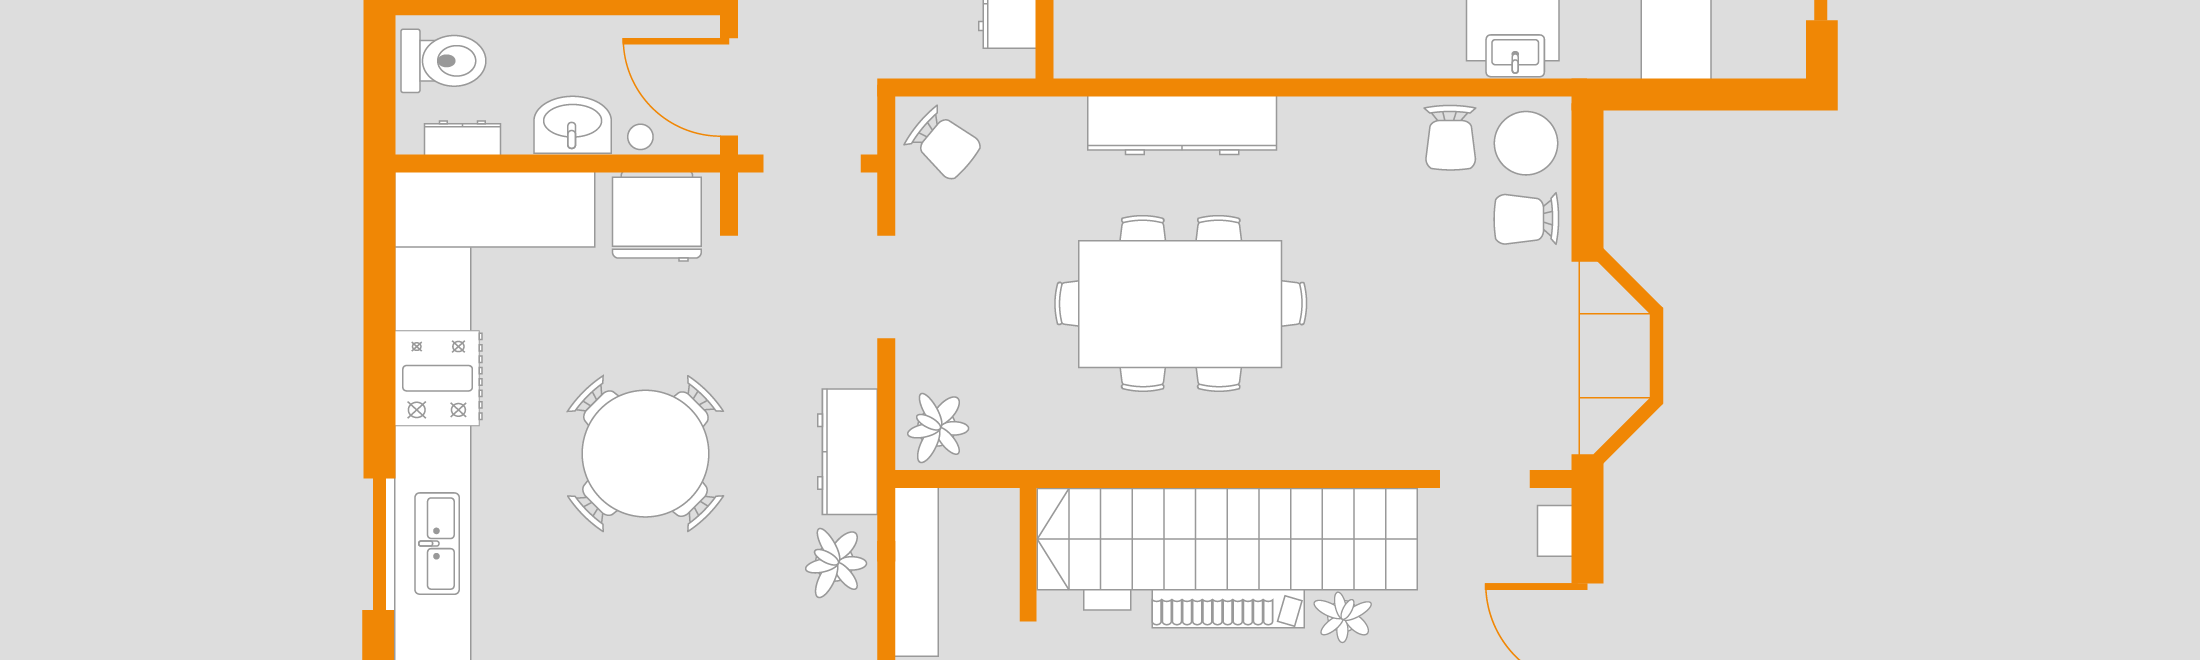 floor plans – draw.io